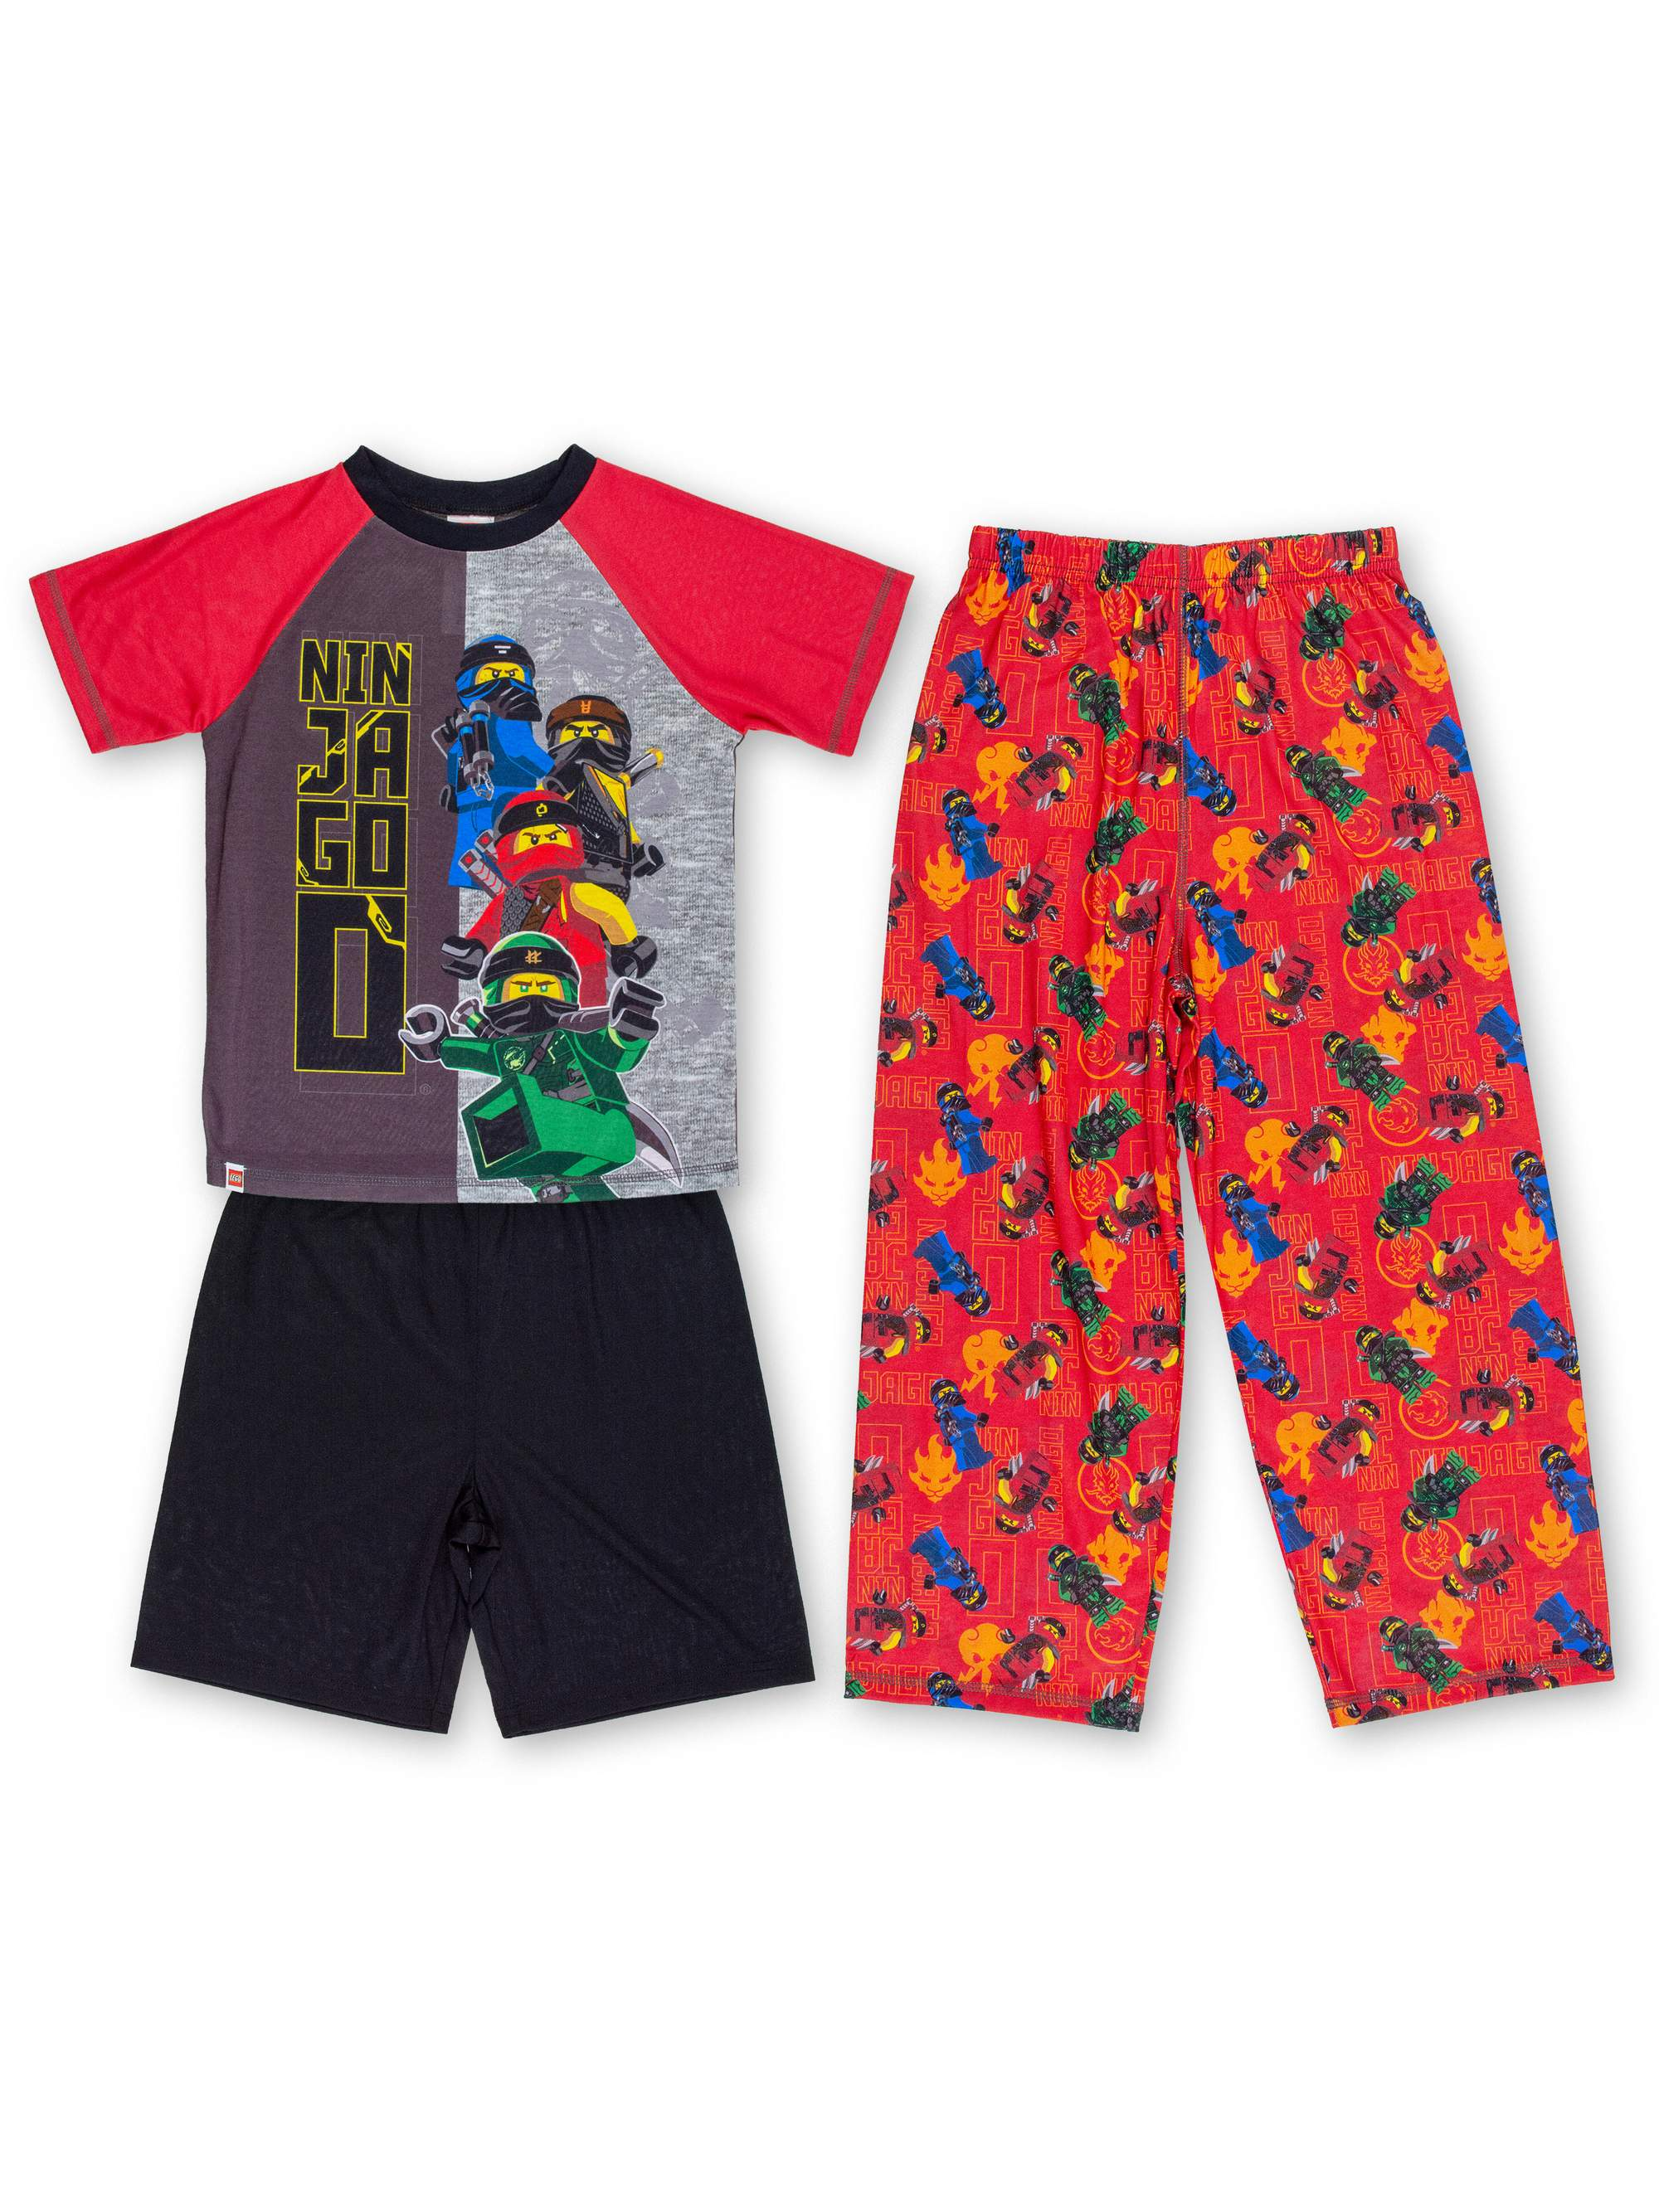 Boys' Lego Ninjago 3 Pajama Sleep Set (Little Boy & Big Boy)